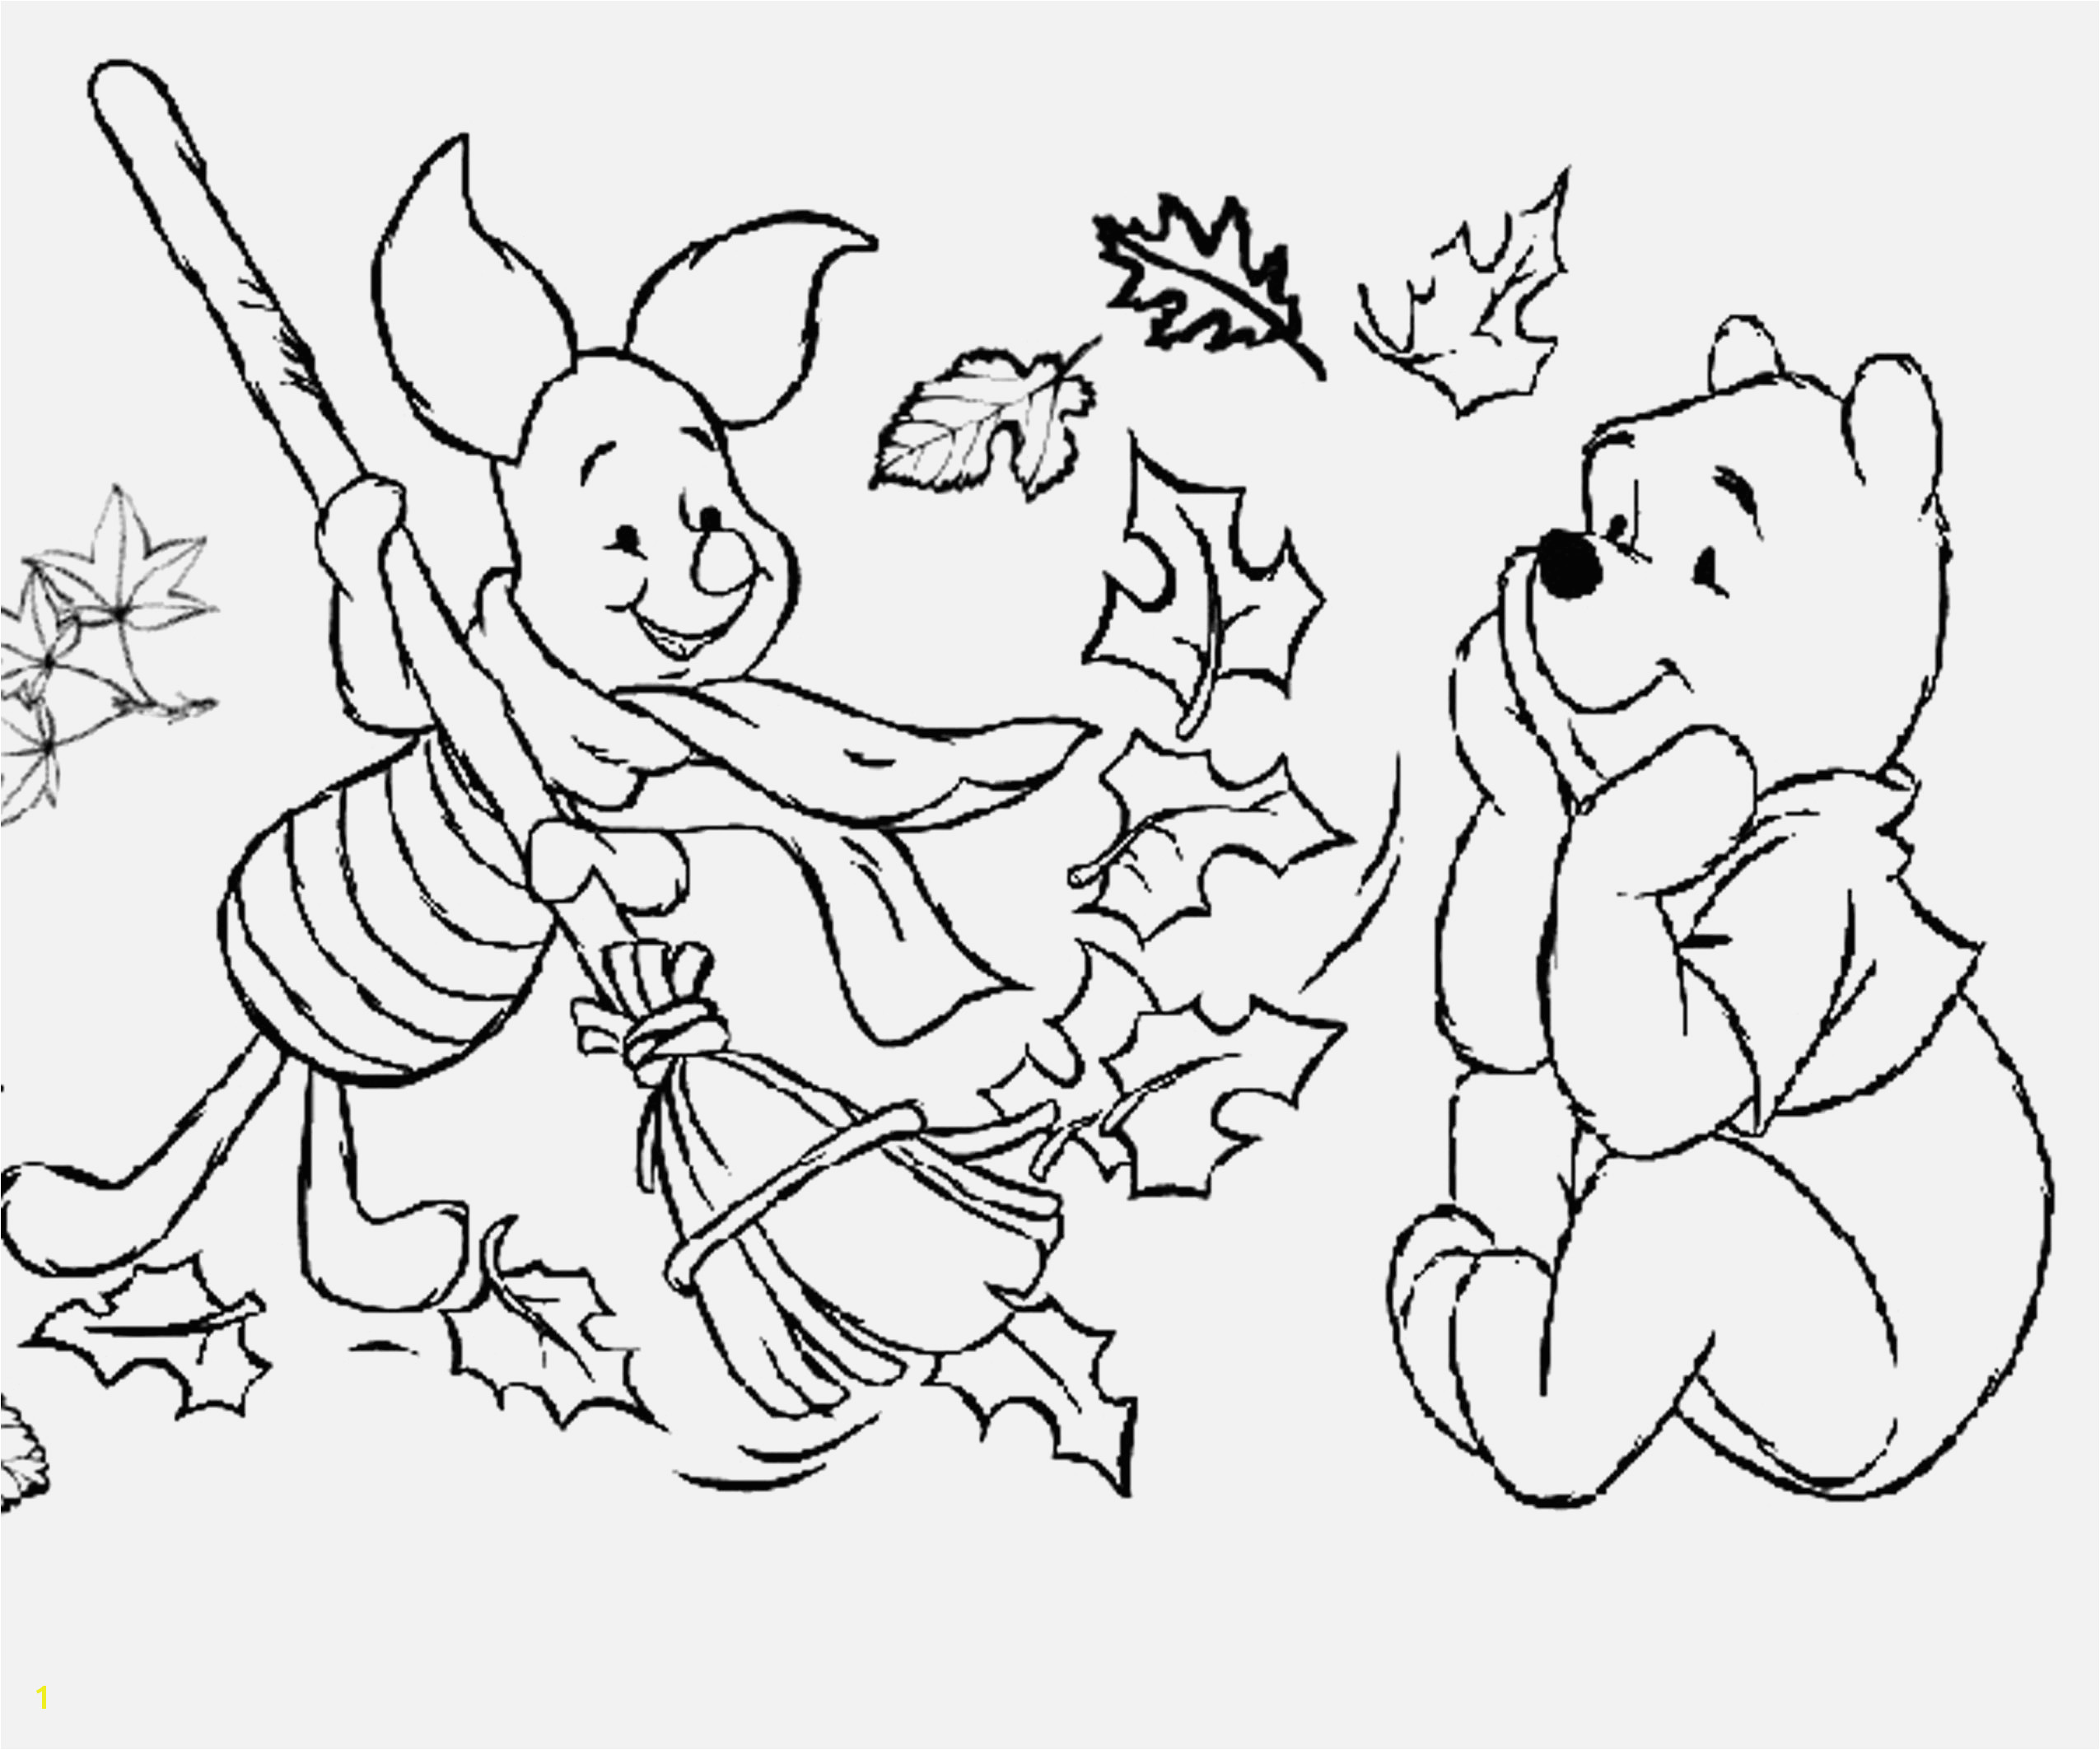 Free Animal Coloring Pages for Kids Easy Adult Coloring Pages Free Print Simple Adult Coloring